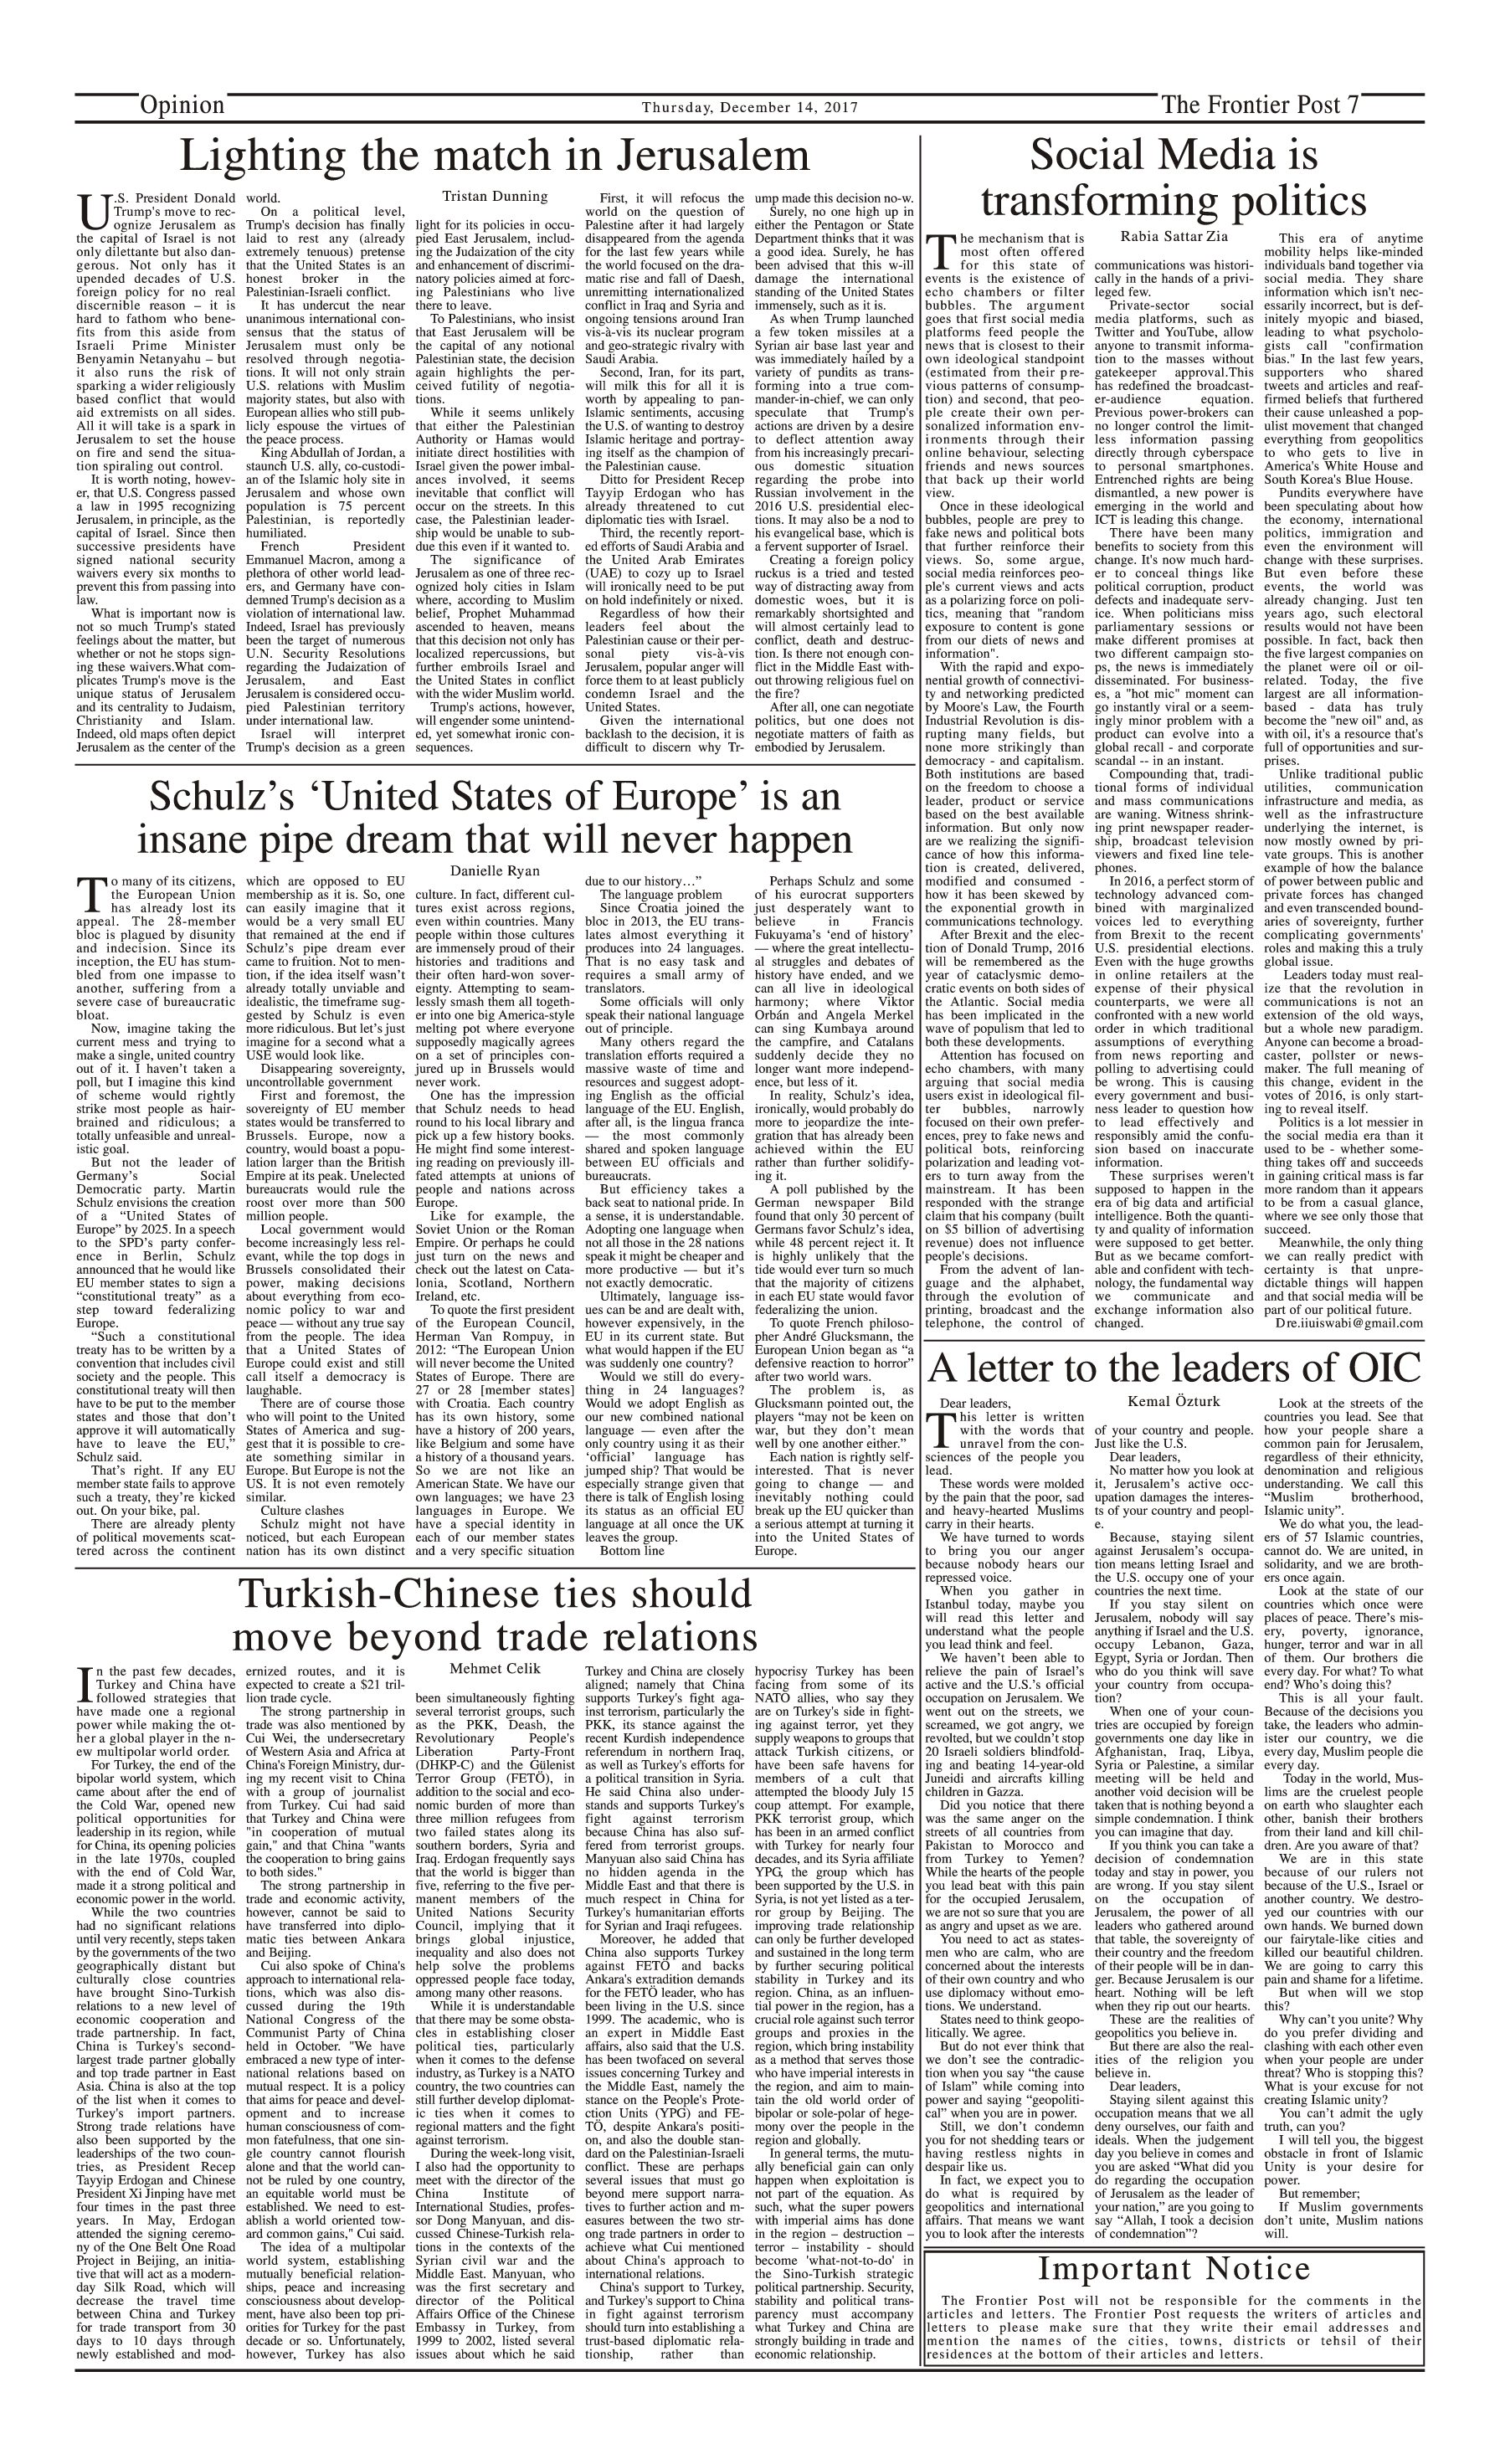 Opinion Page 14-12